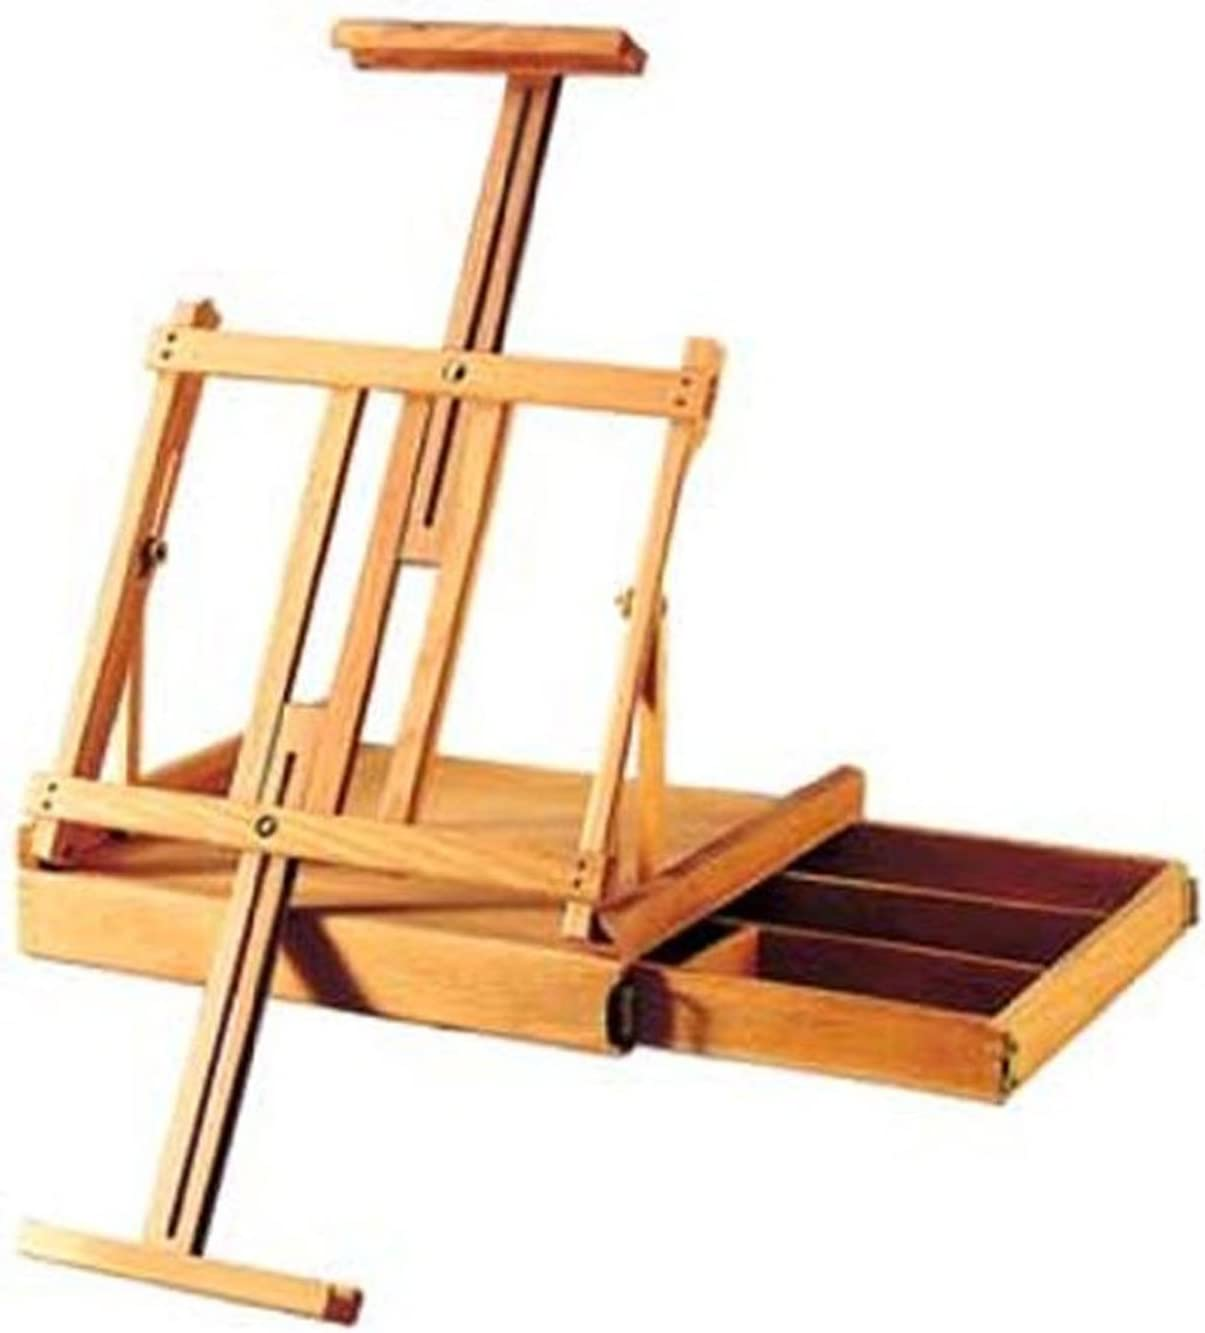 Ravenna Table Easel with Drawer